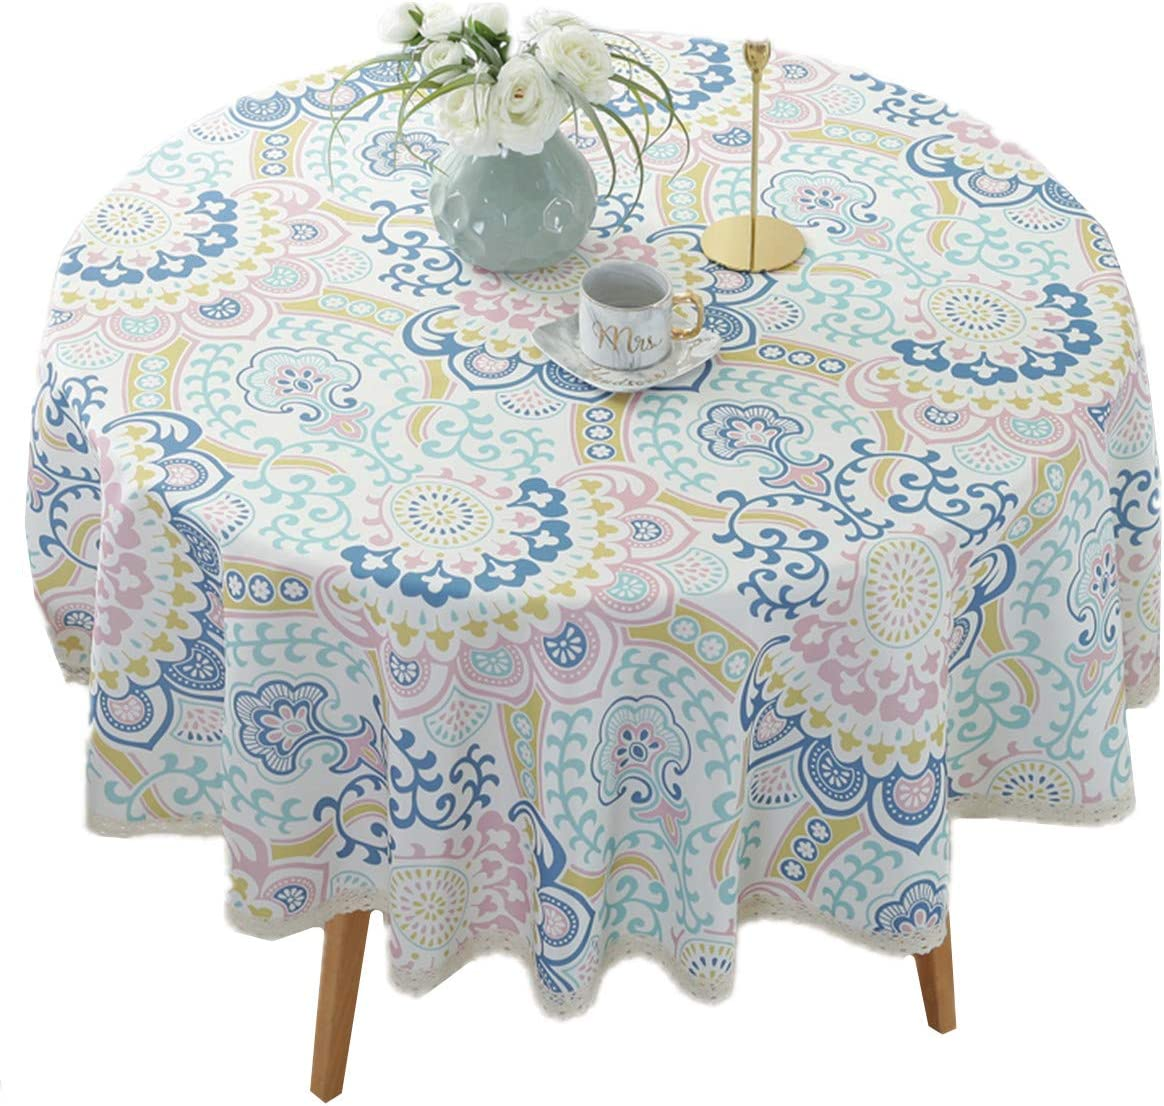 """Heavy Duty Elegant Printed Tablecloth - Spillproof Fabric Lace Table Cloth - Round Table Cover for Dining Room Kitchen Home Decor (47"""" Round, Blue Cirrus)"""